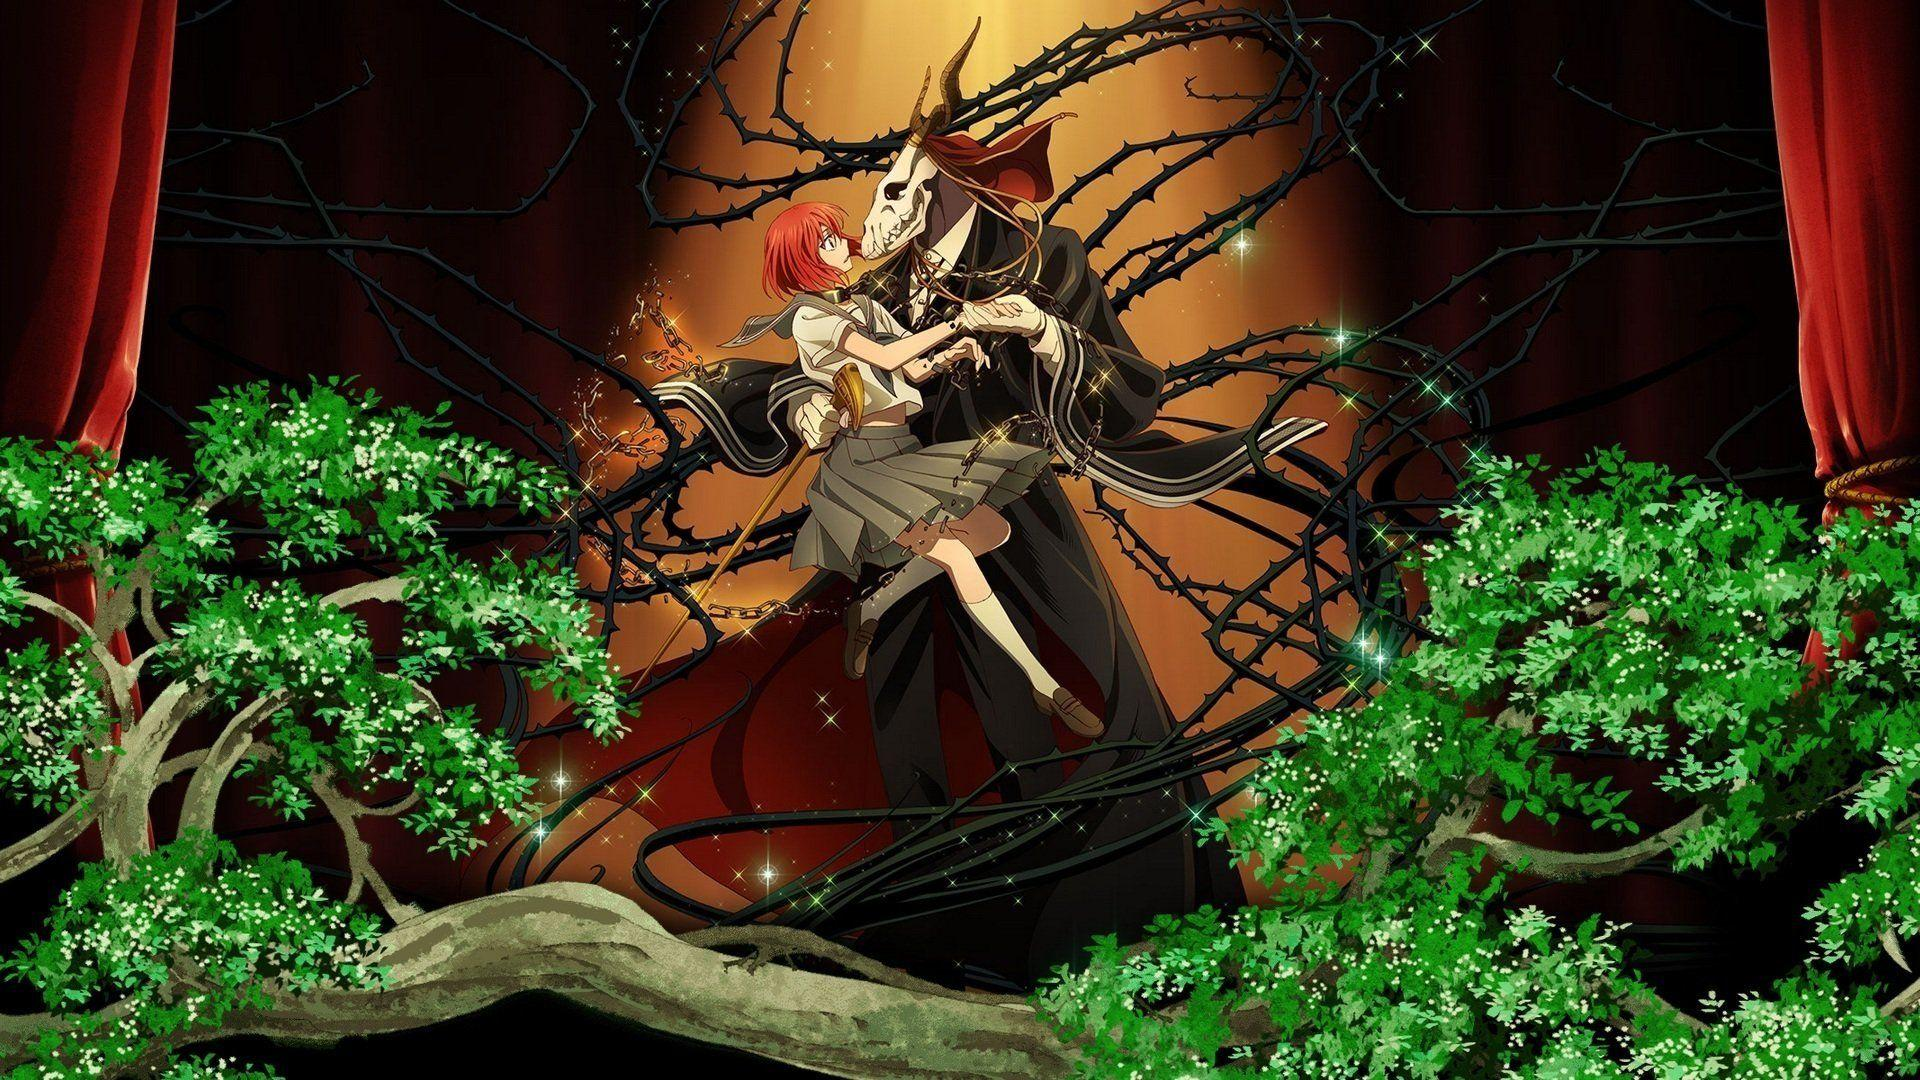 Masked man anime like Earl and Fairy, The Ancient Magus' Bride